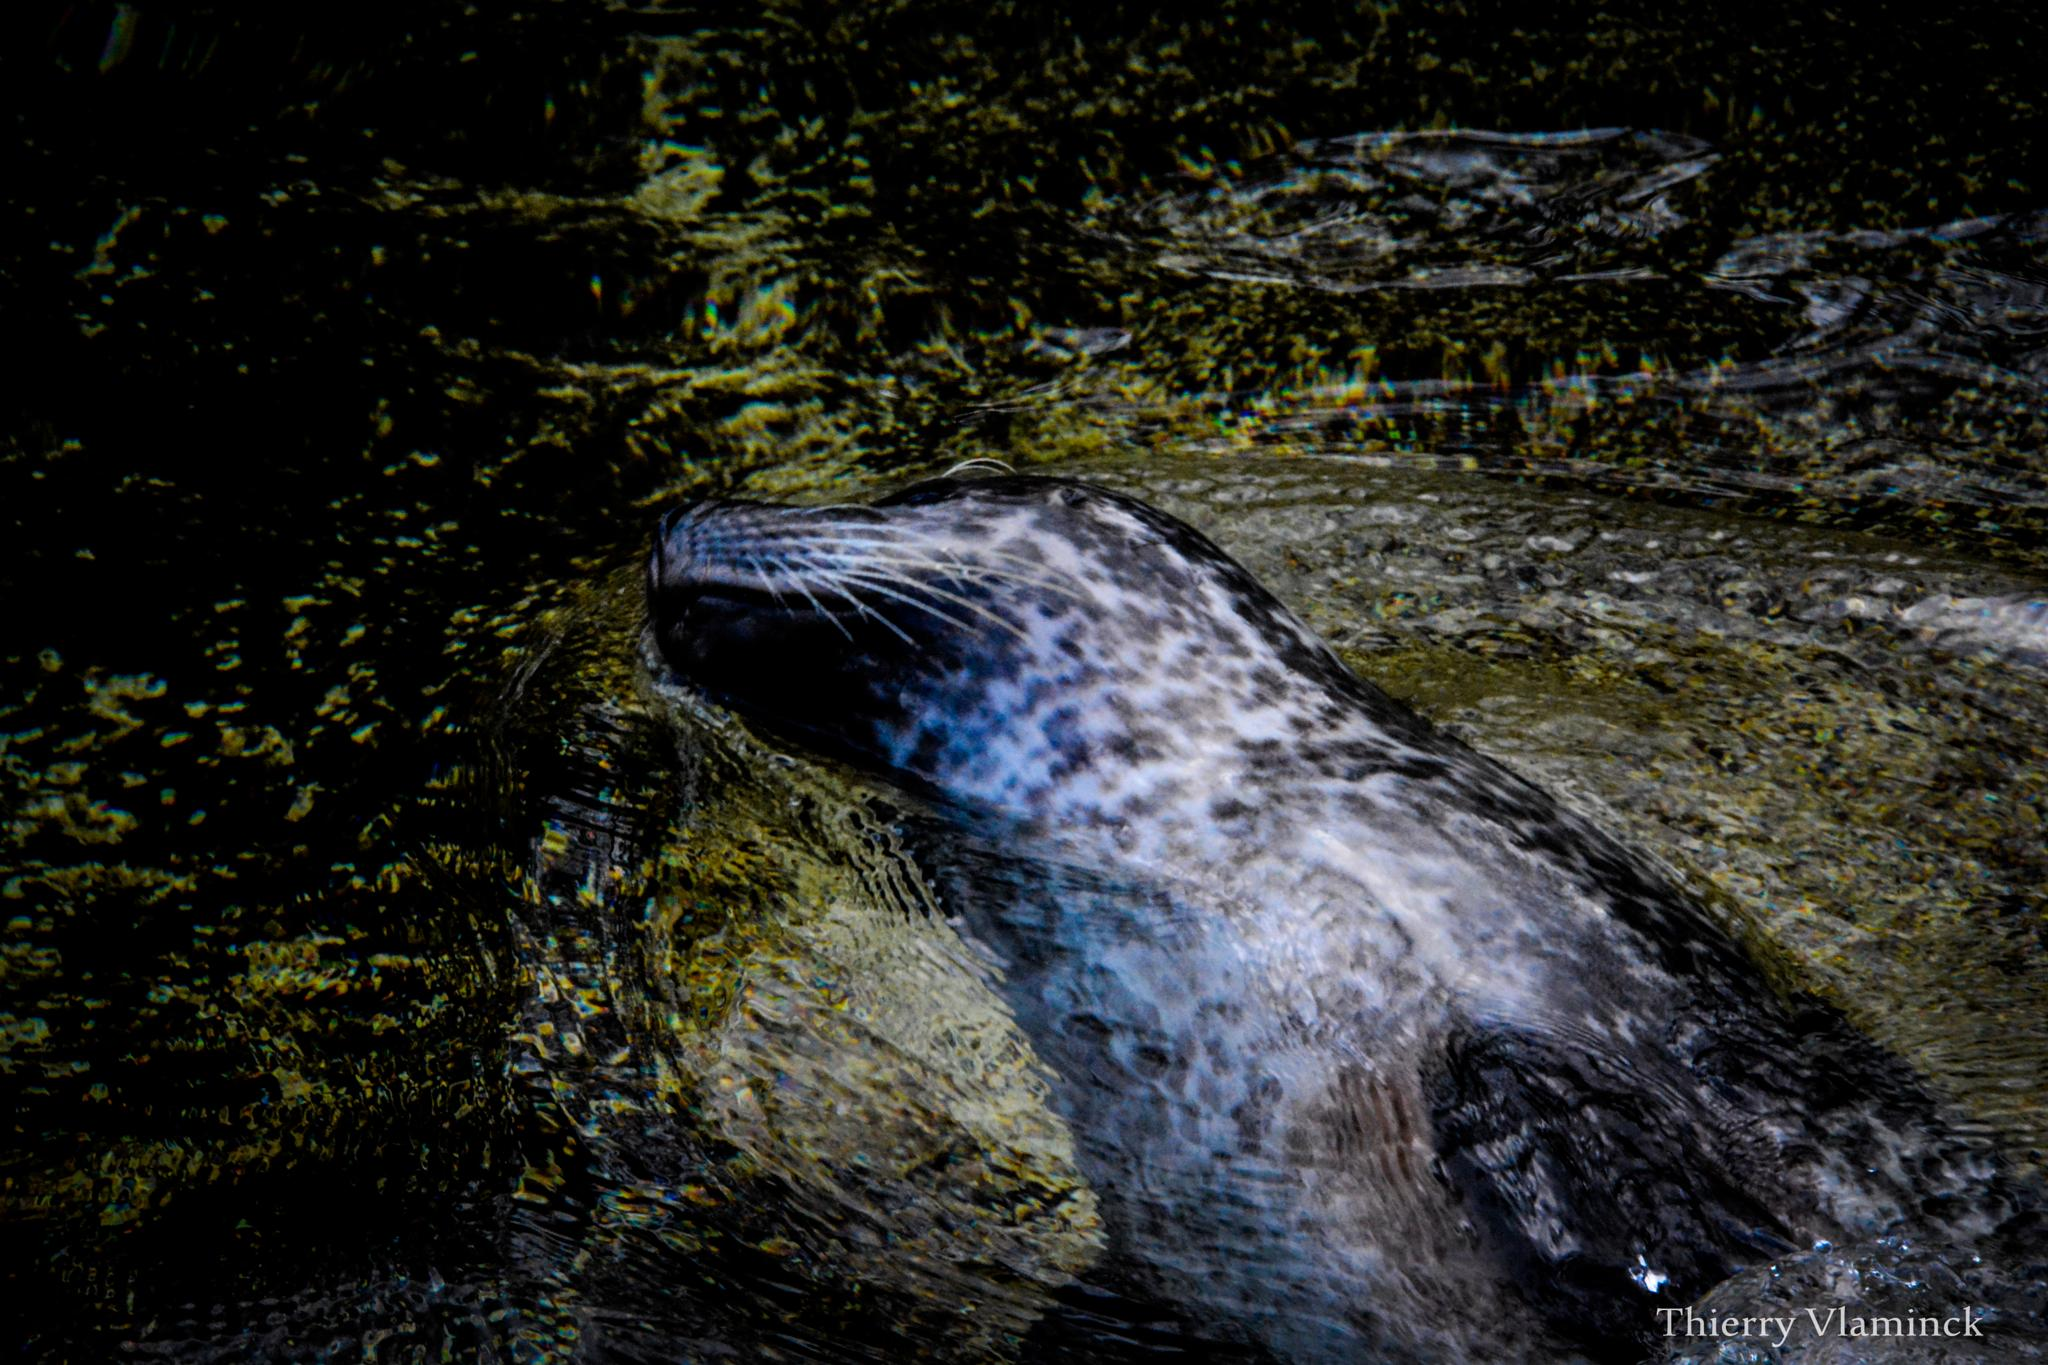 seal gliding through water by Thierry Vlaminck